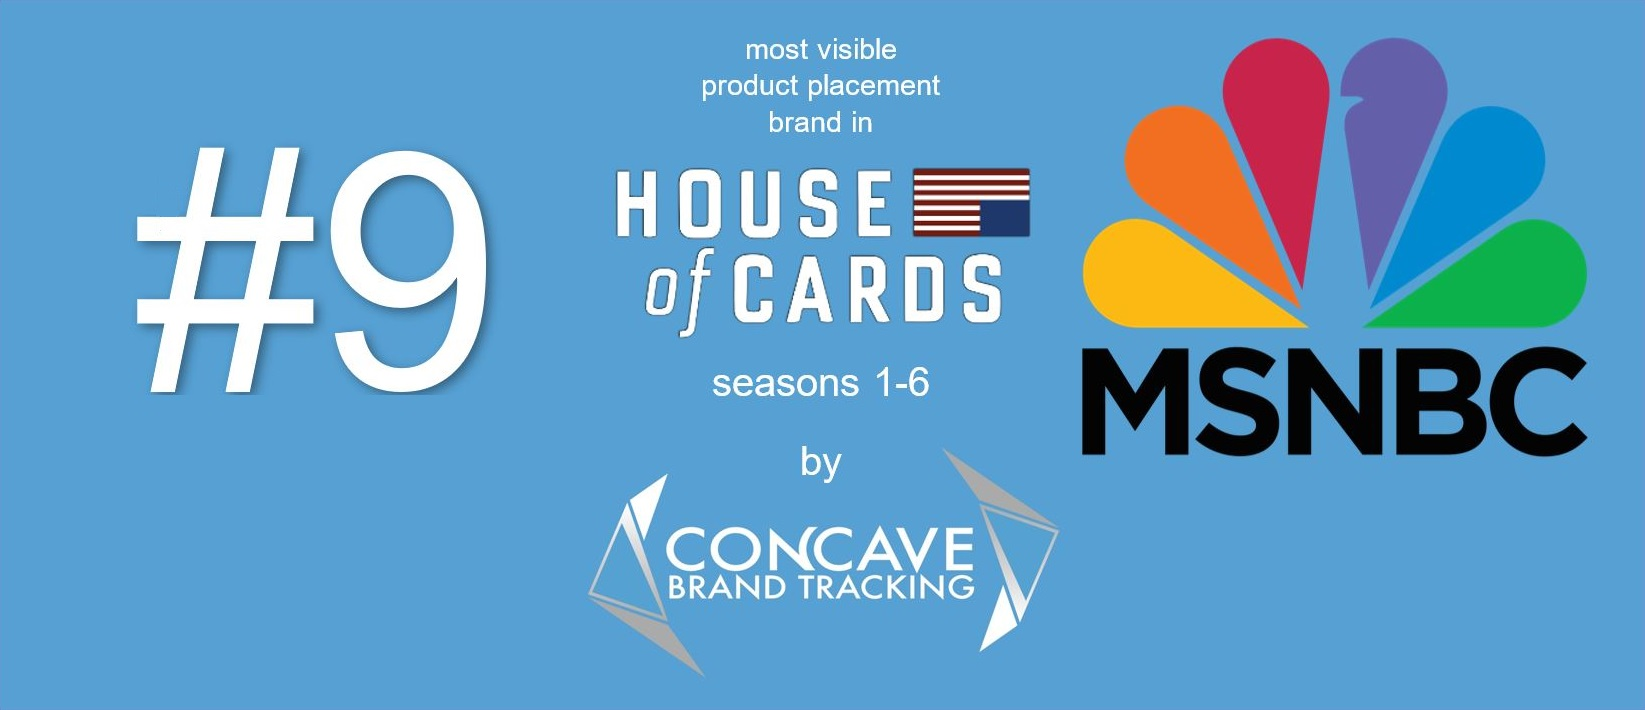 9 #9 10 most visible product placement brand in HOUSE OF CARDS Concave Brand Tracking MSNBC TV channel